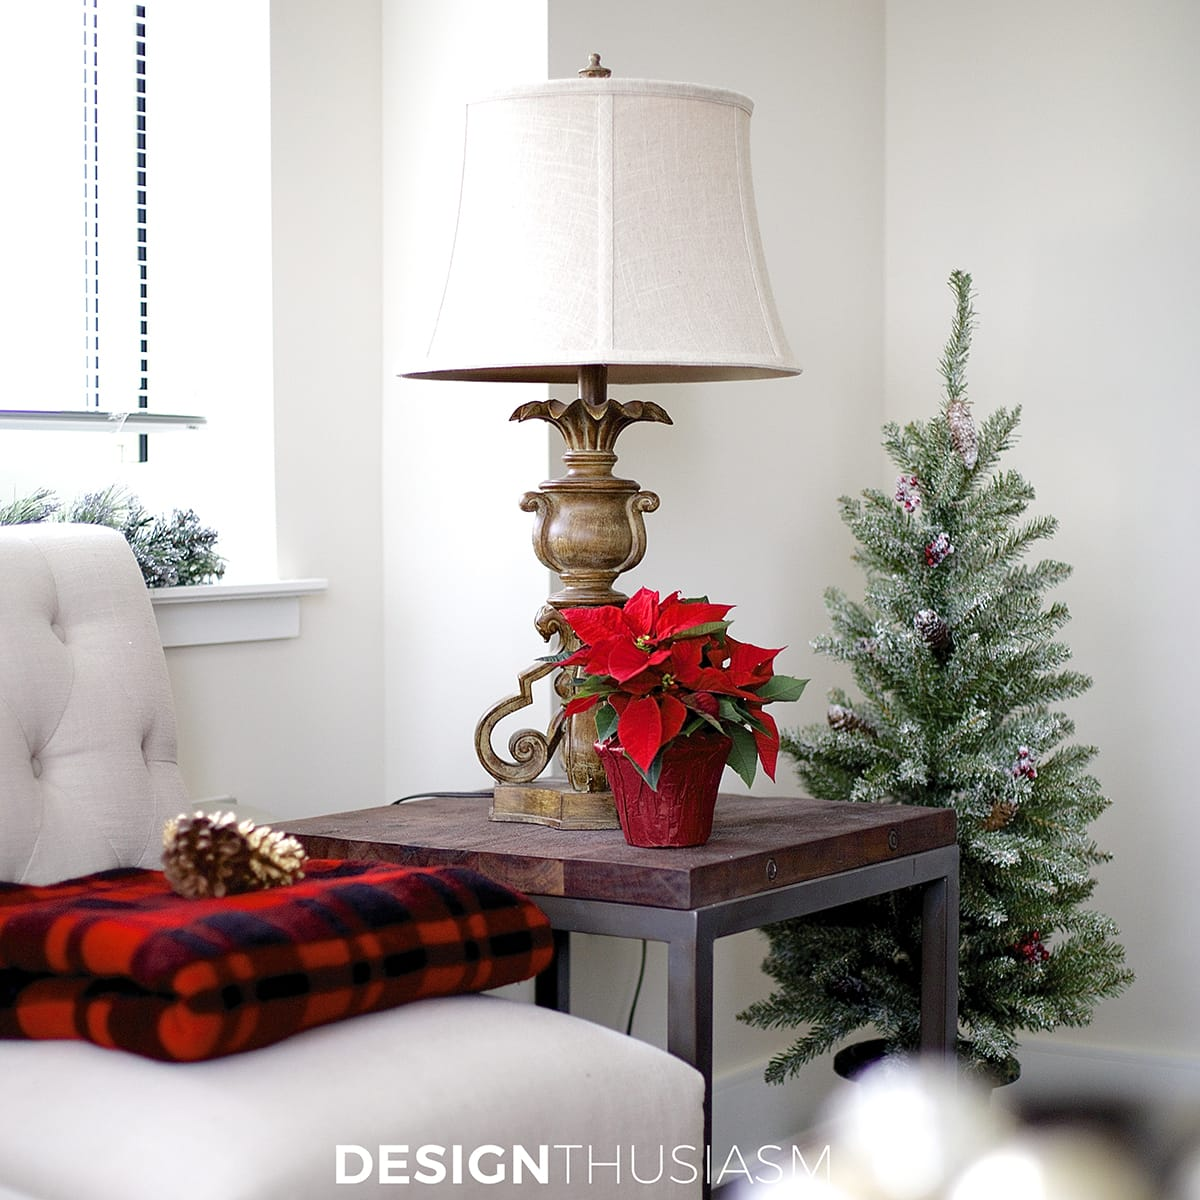 Beau Holiday Decorating Ideas For A Small Apartment | Designthusiasm.com